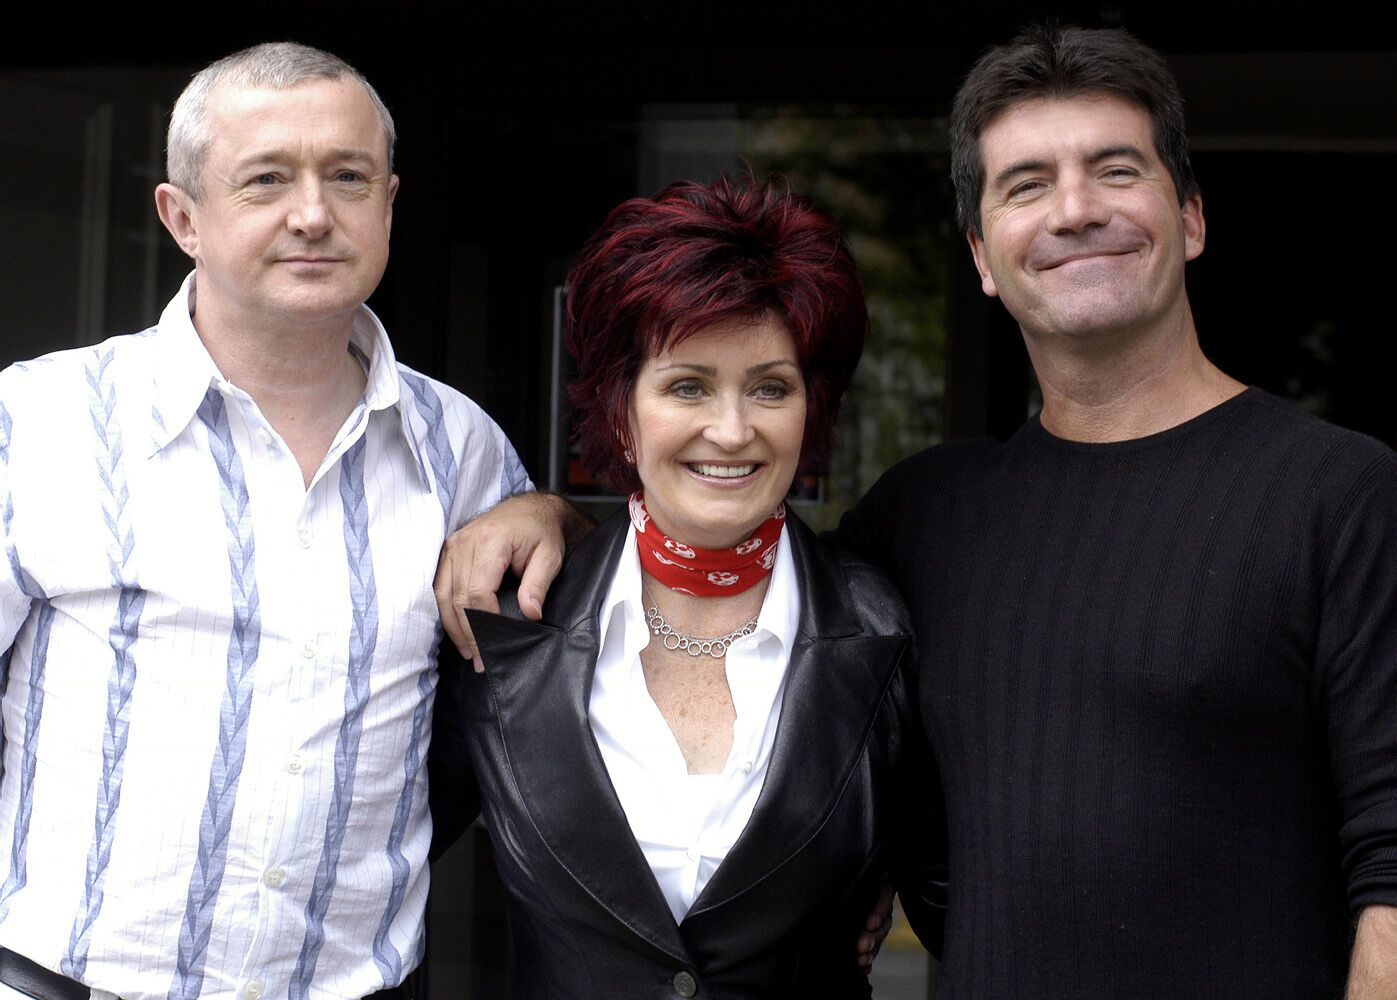 """Louis Walsh, Sharon Osbourne and Simon Cowell on set of the TV show """"X Factor"""" in 2004 